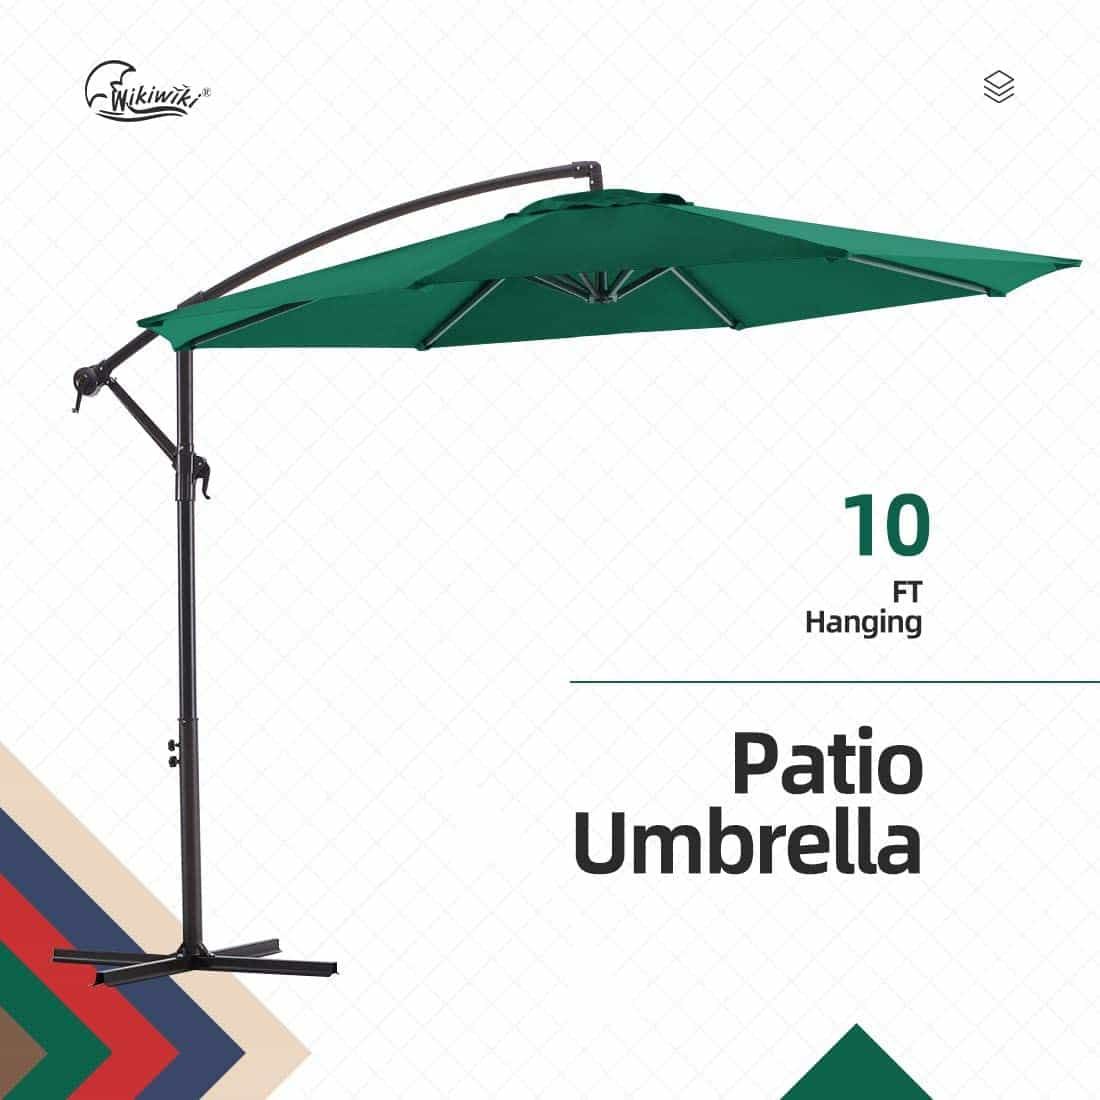 10 ft cantilever umbrella